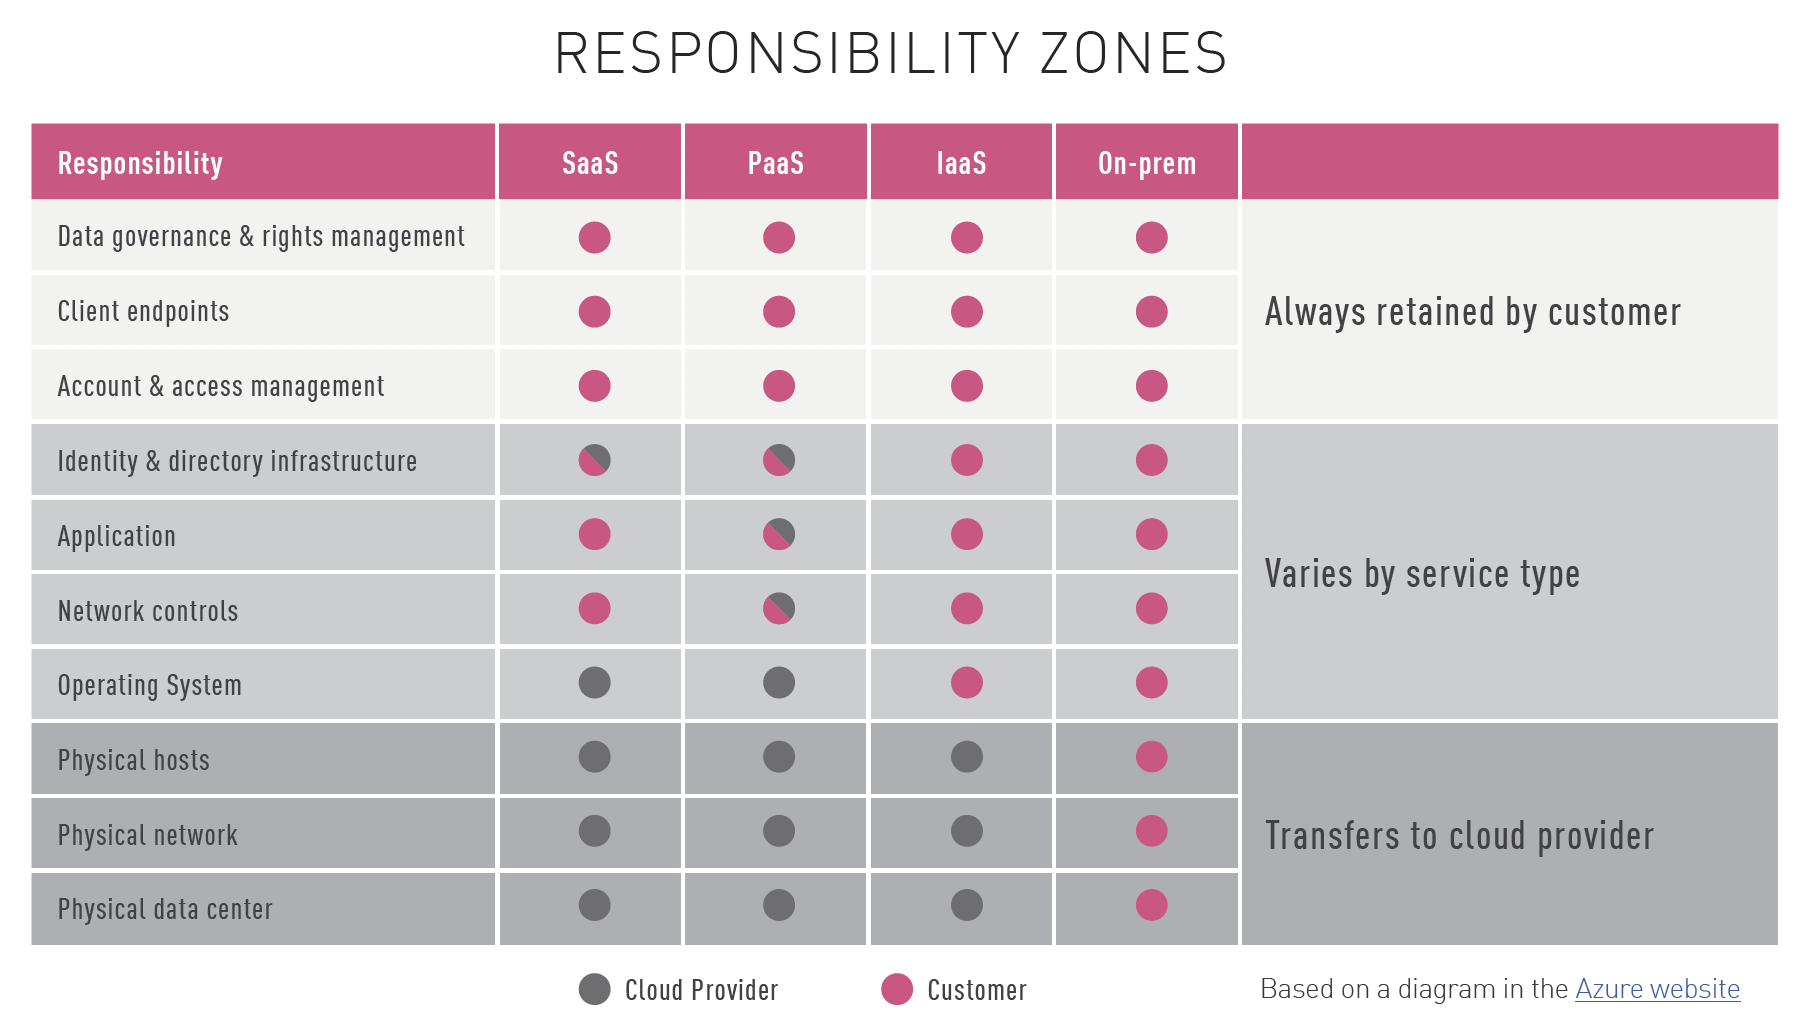 Figure 2: Shared responsibility zones across cloud service models